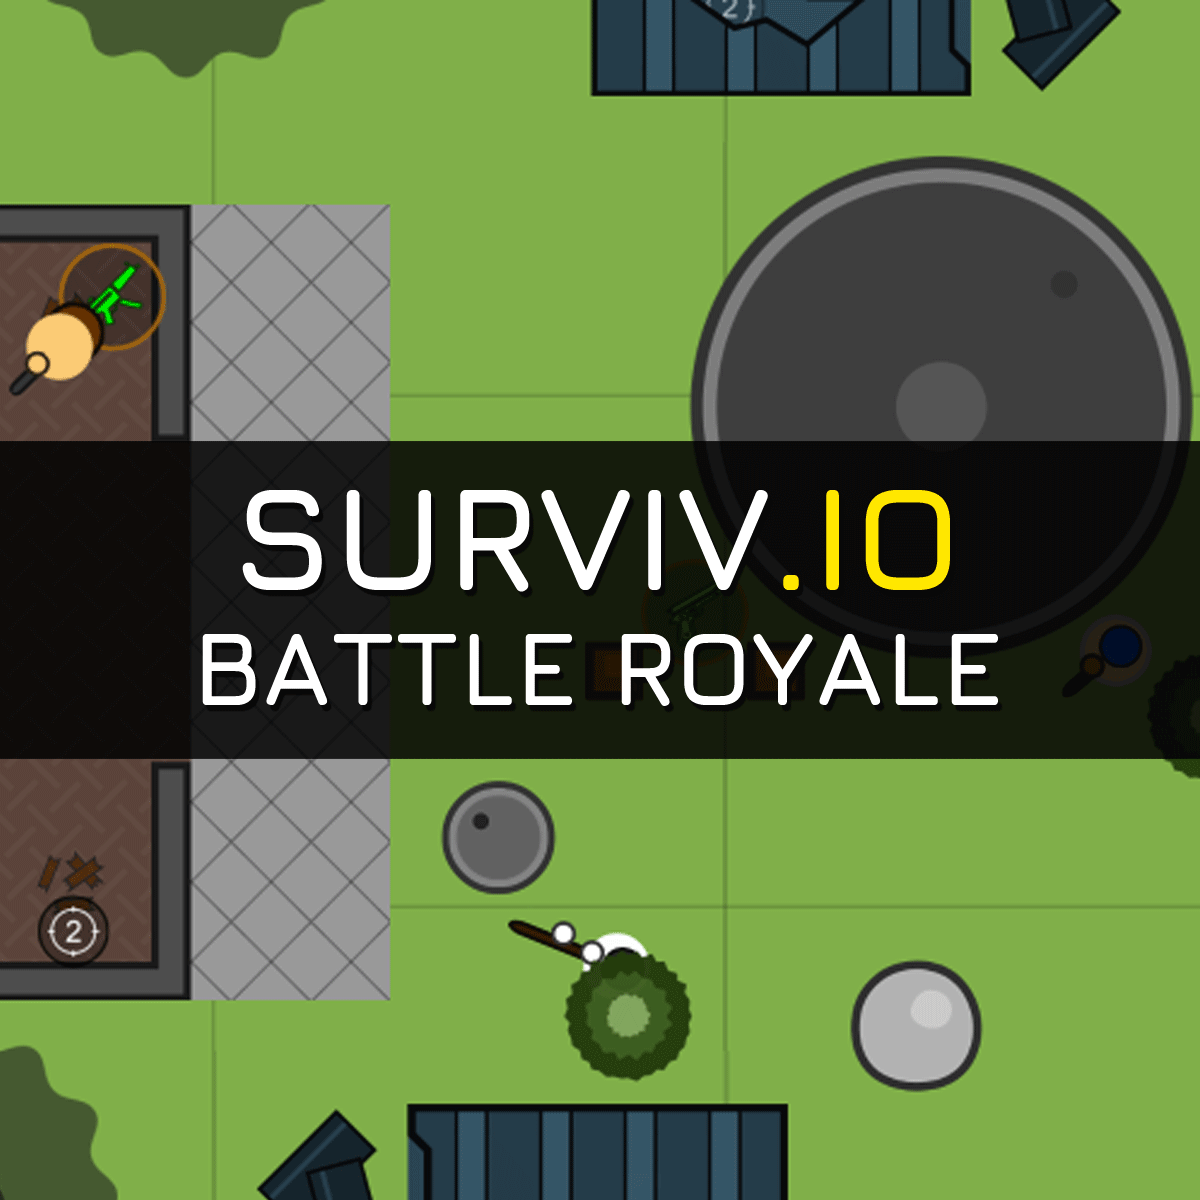 surviv io - 2d battle royale game